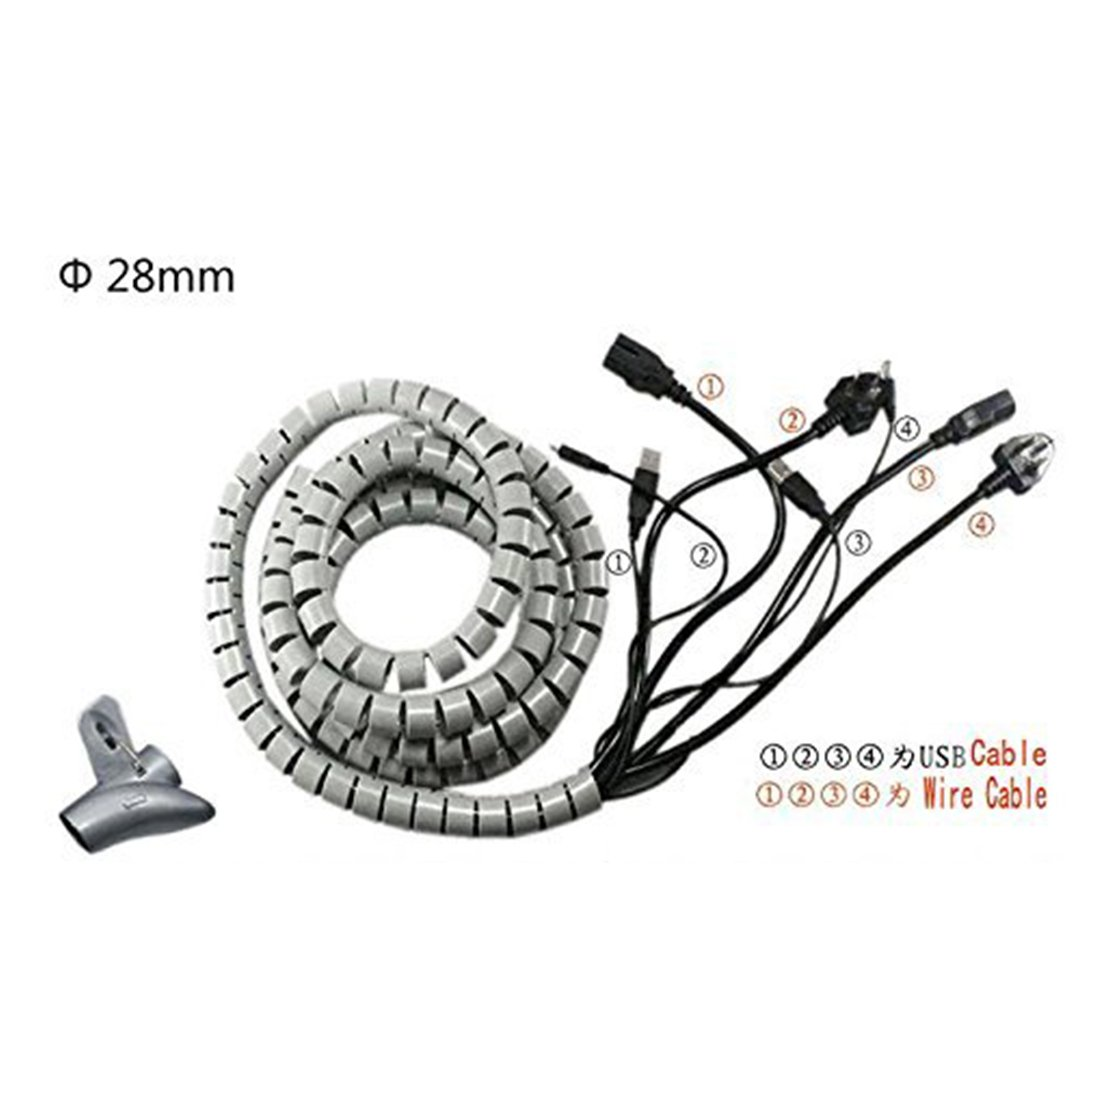 sourcingmap 15mm Flexible Cable Organizer Spiral Tube Cable Wire Wrap Computer Manage Cord White 3 Meters Length with Clip